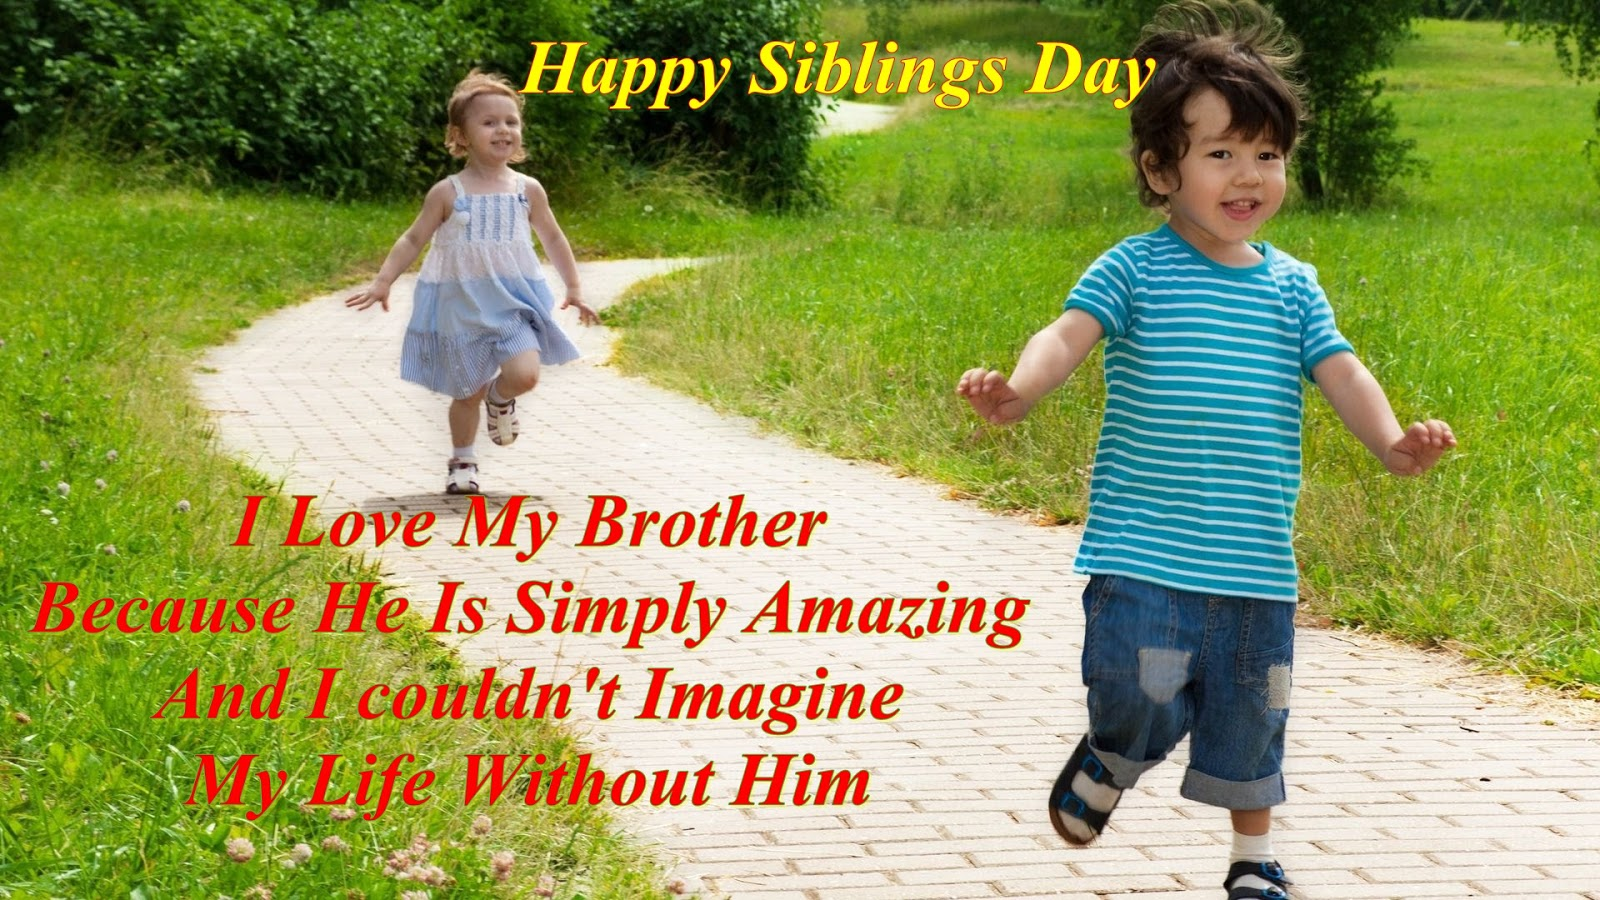 Brother And Sister Love Quotes Cuteilovemybrotherquotes 1600×900 Pixels  May Calendar